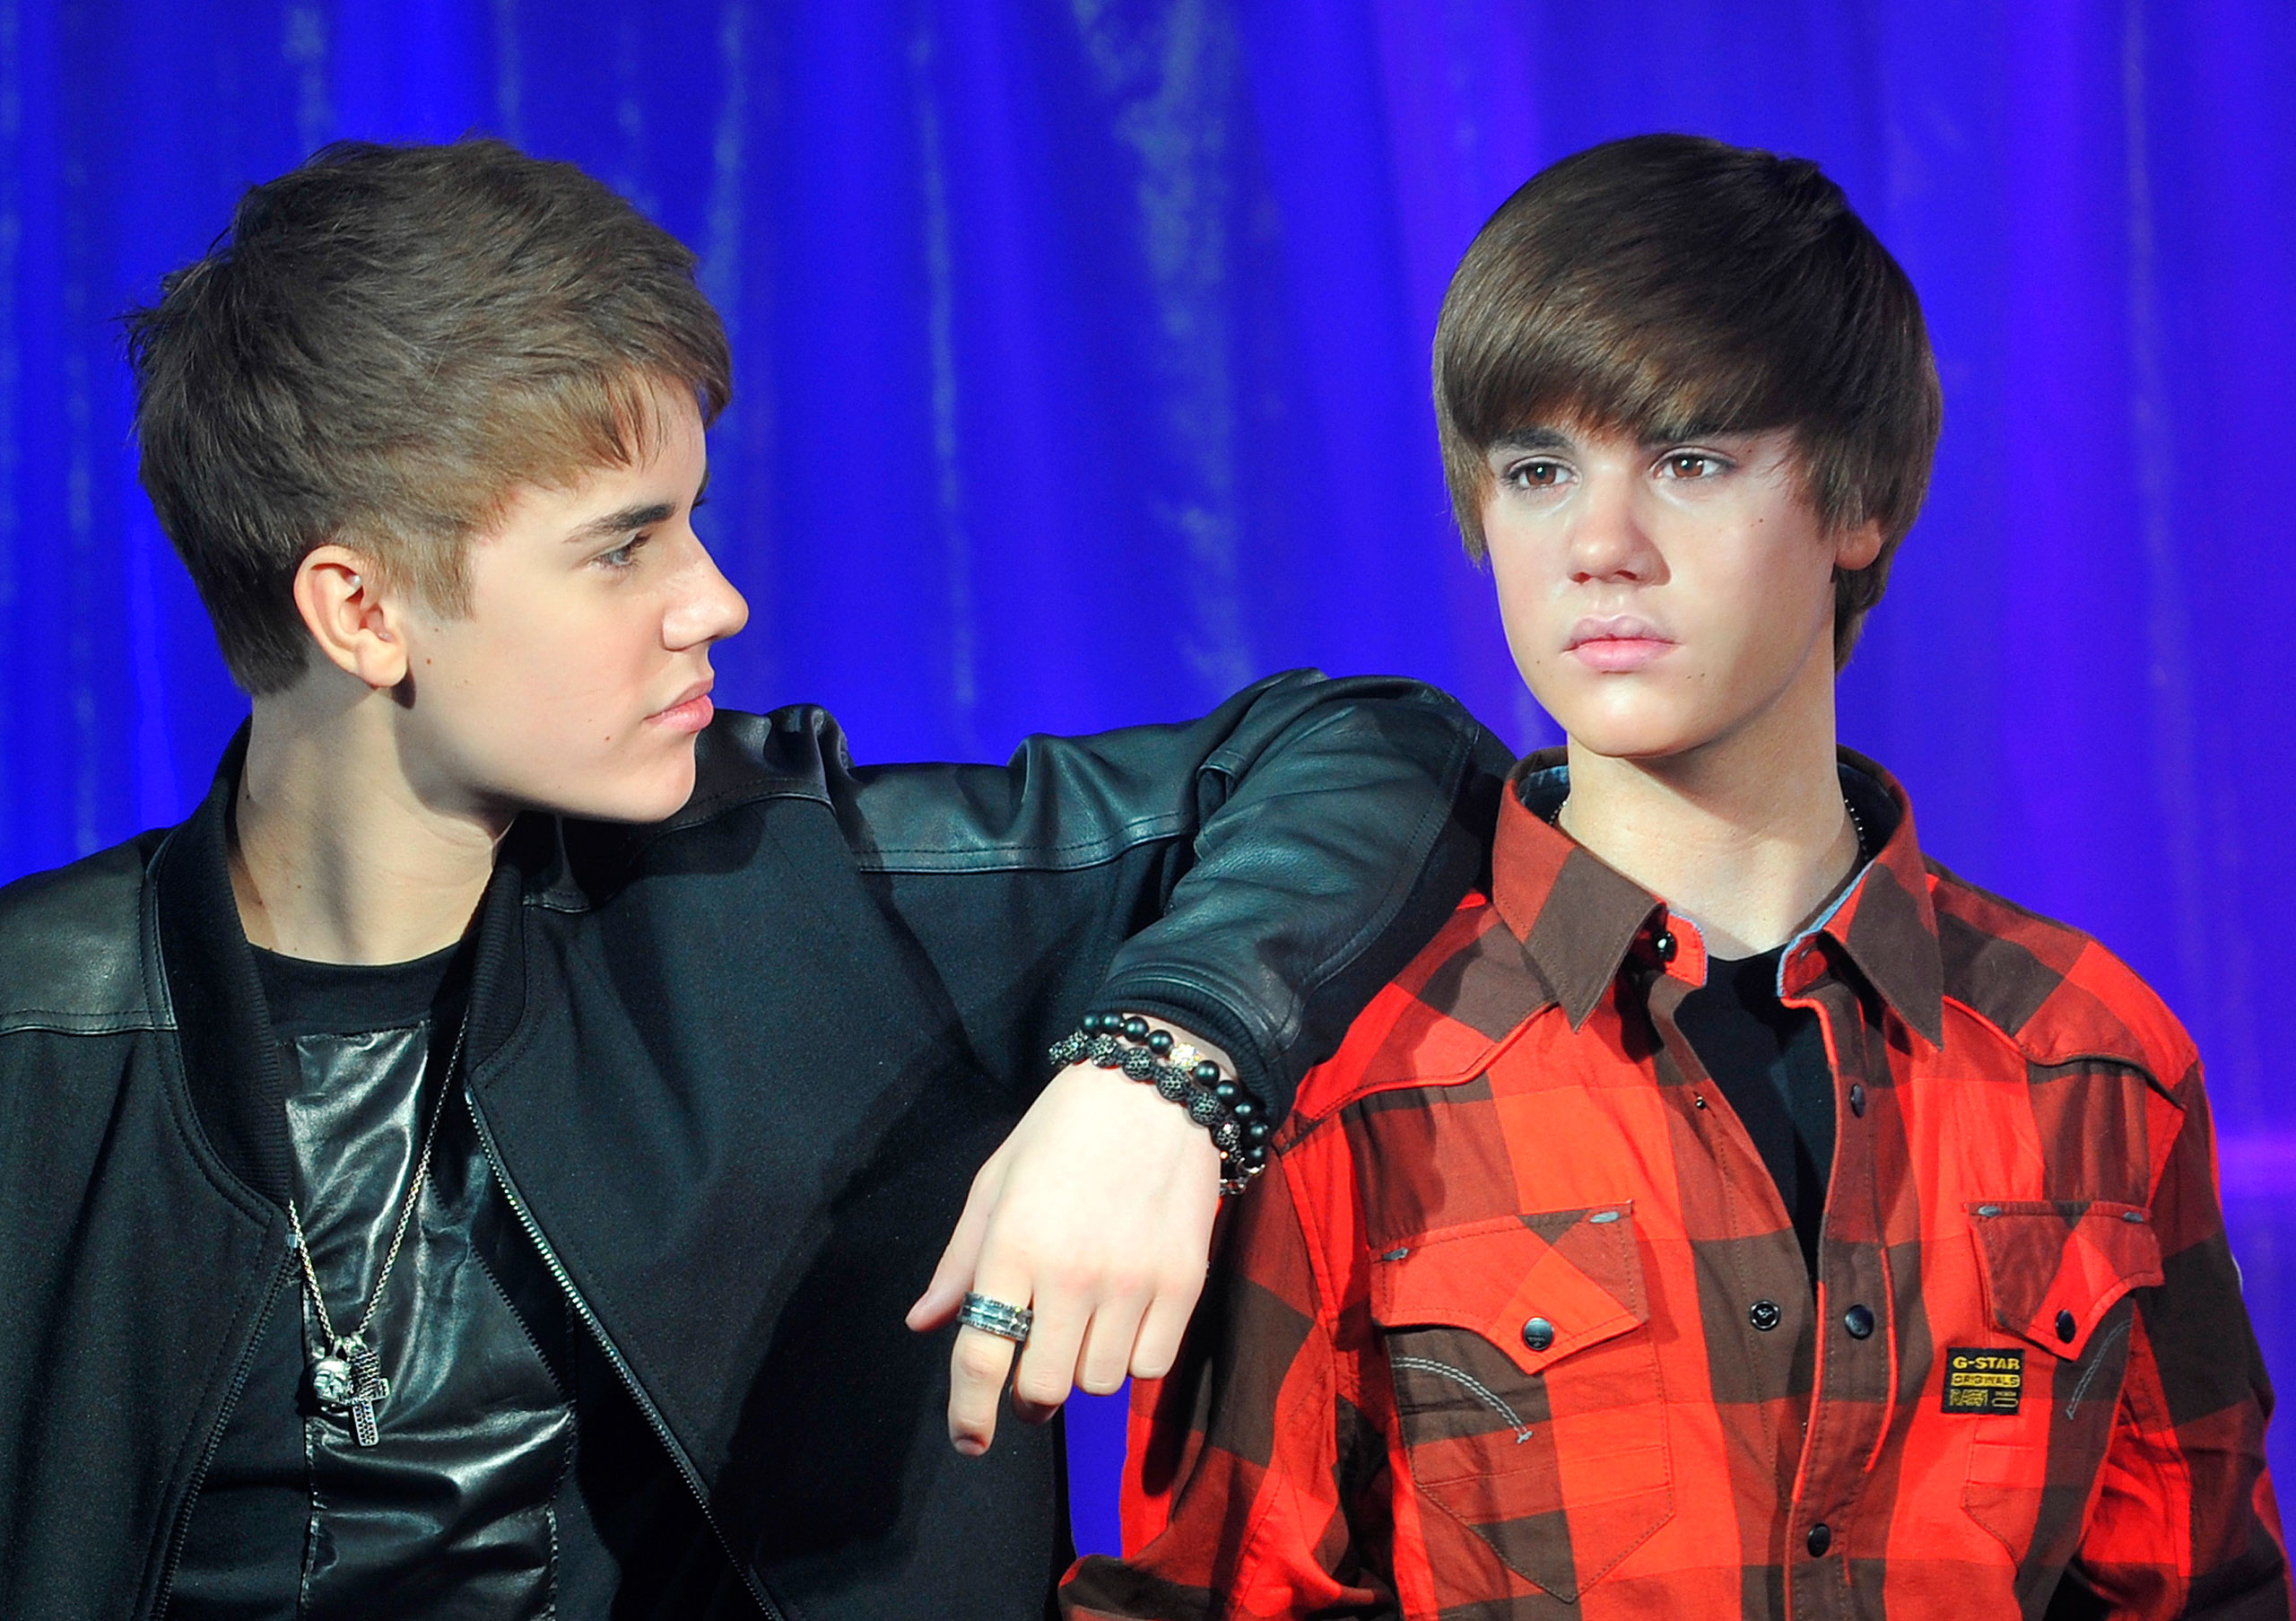 Justin Bieber, left, poses with his wax figure during an official unveiling at Madame Tussauds wax museum in London on March 15, 2011.